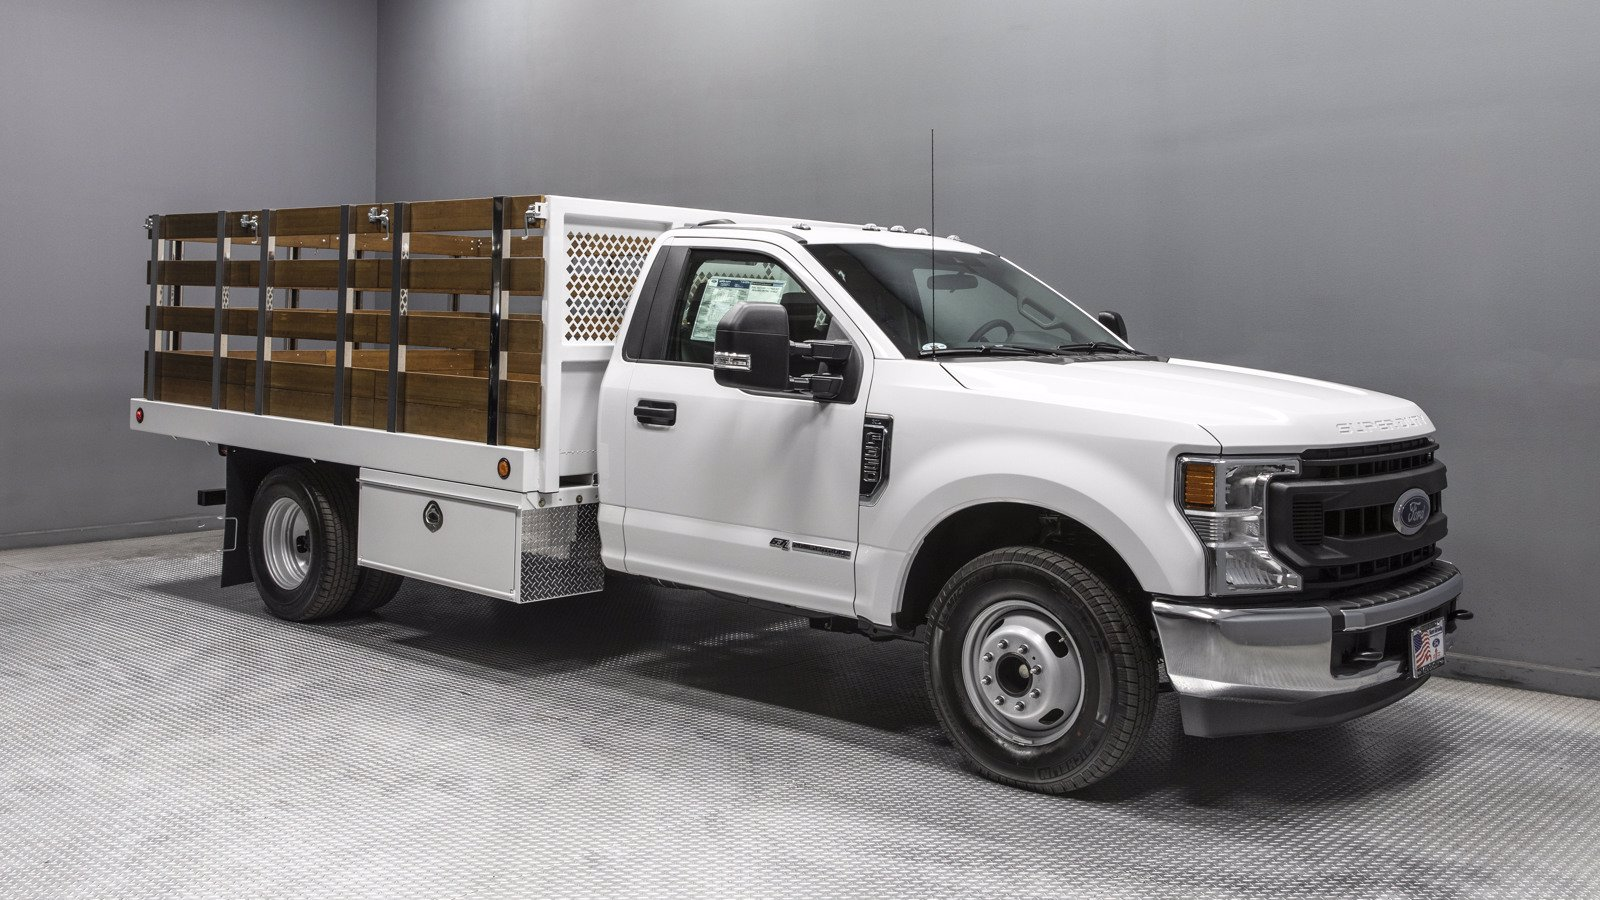 2020 Ford F-350 Regular Cab DRW 4x2, Royal Stake Bed #03505 - photo 1